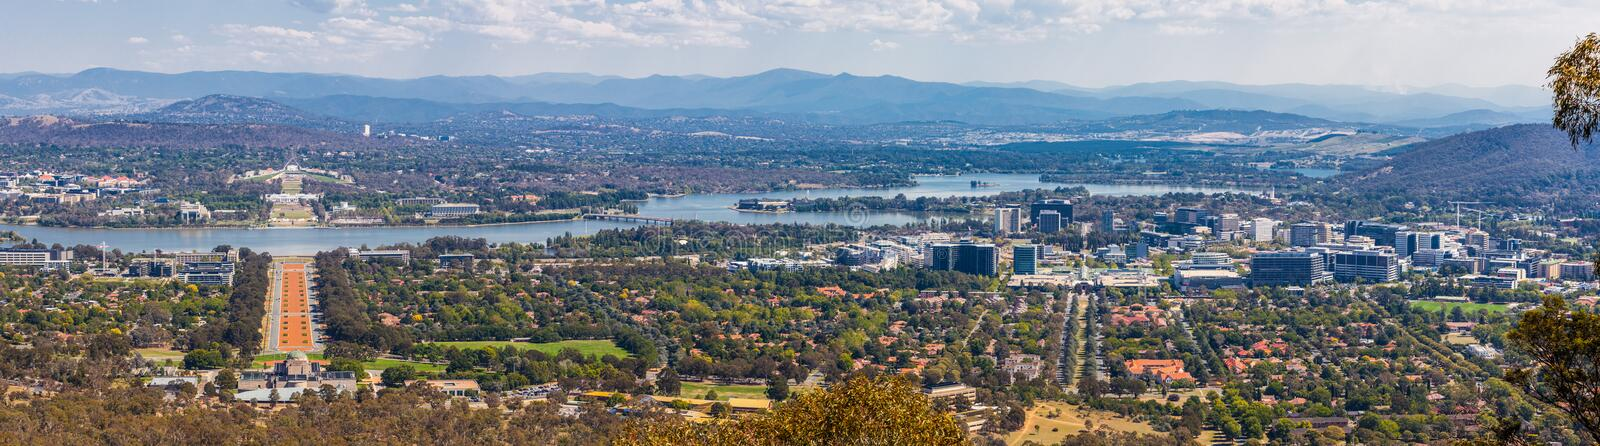 View of Canberra from Mount Ainslie. stock photos